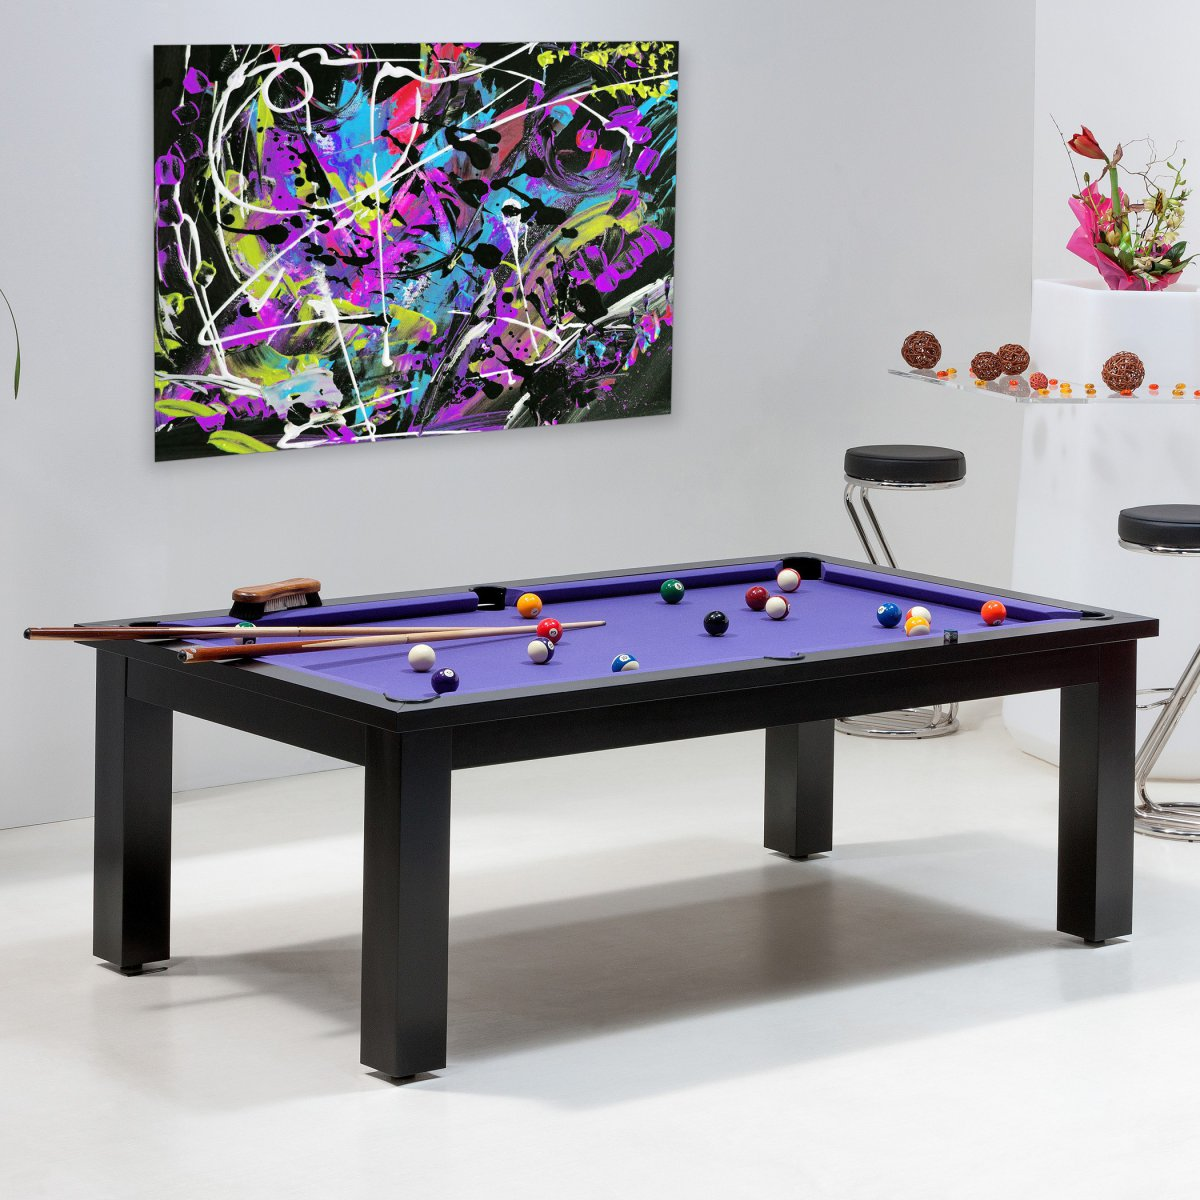 Achat billard uniquement sur billards de france le miami - Table de billard transformable ...